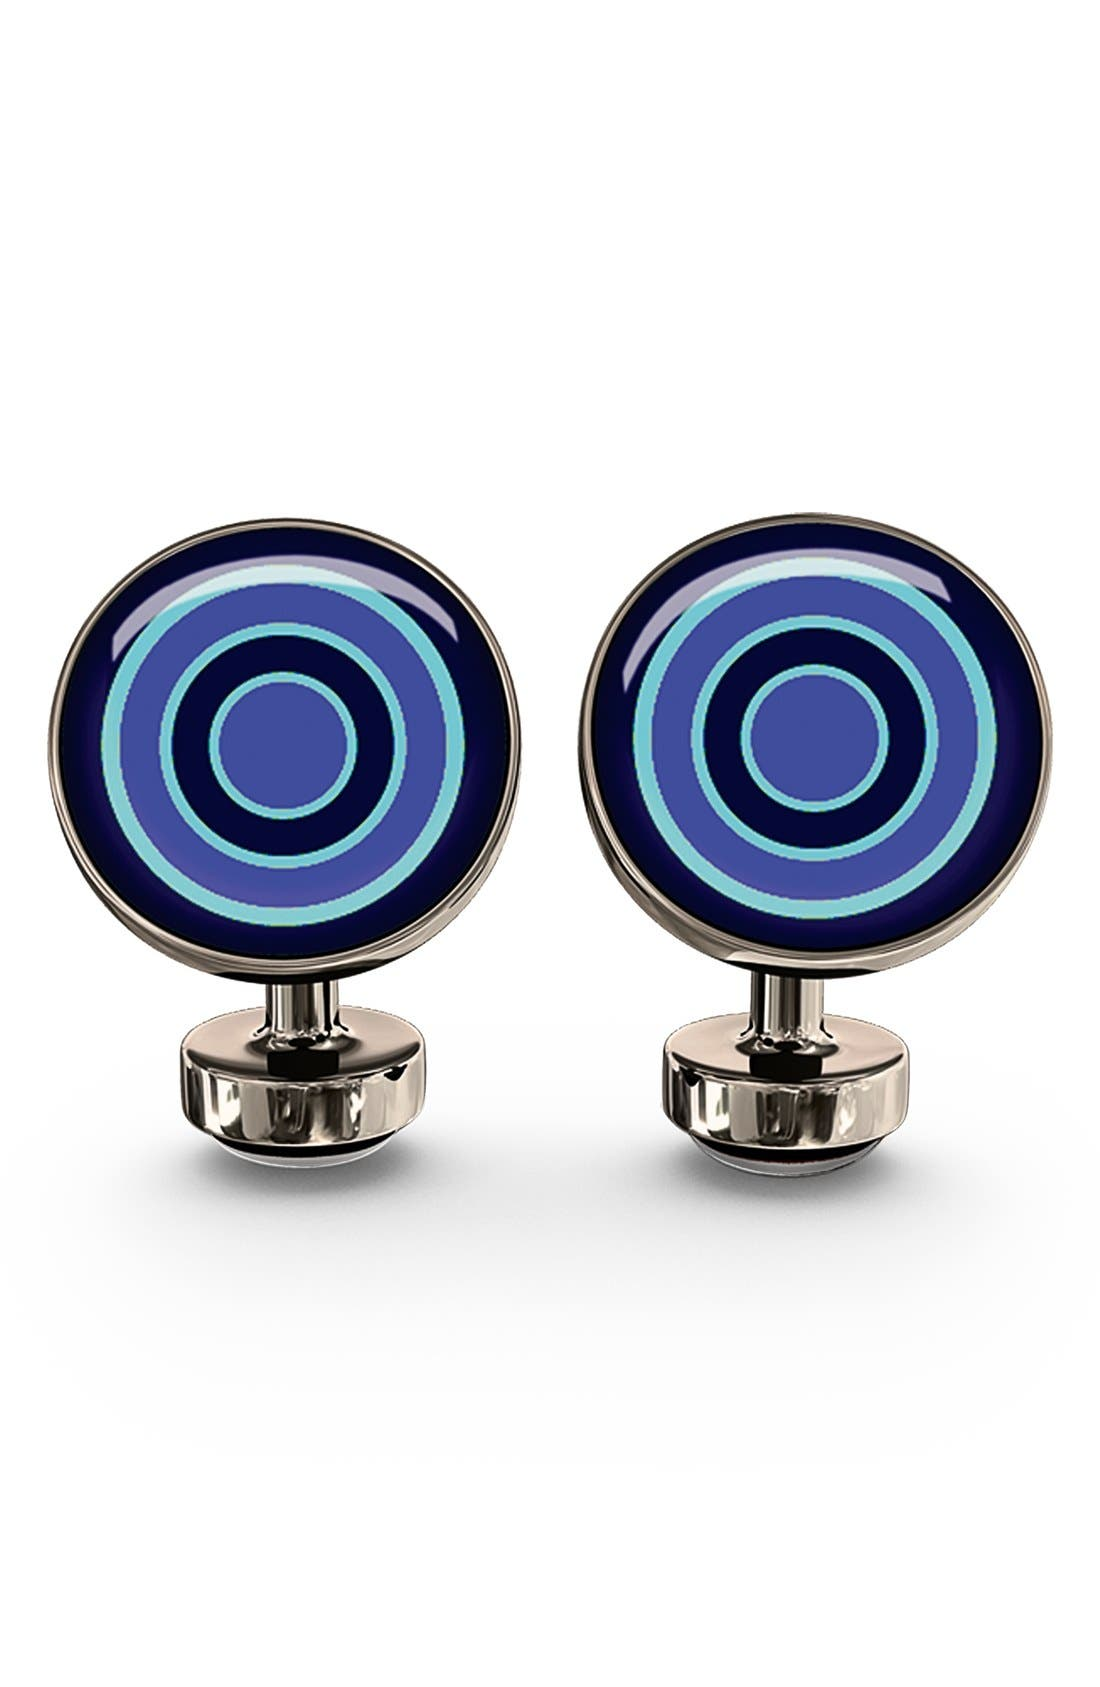 Alternate Image 1 Selected - Würkin Stiffs Target Cuff Links